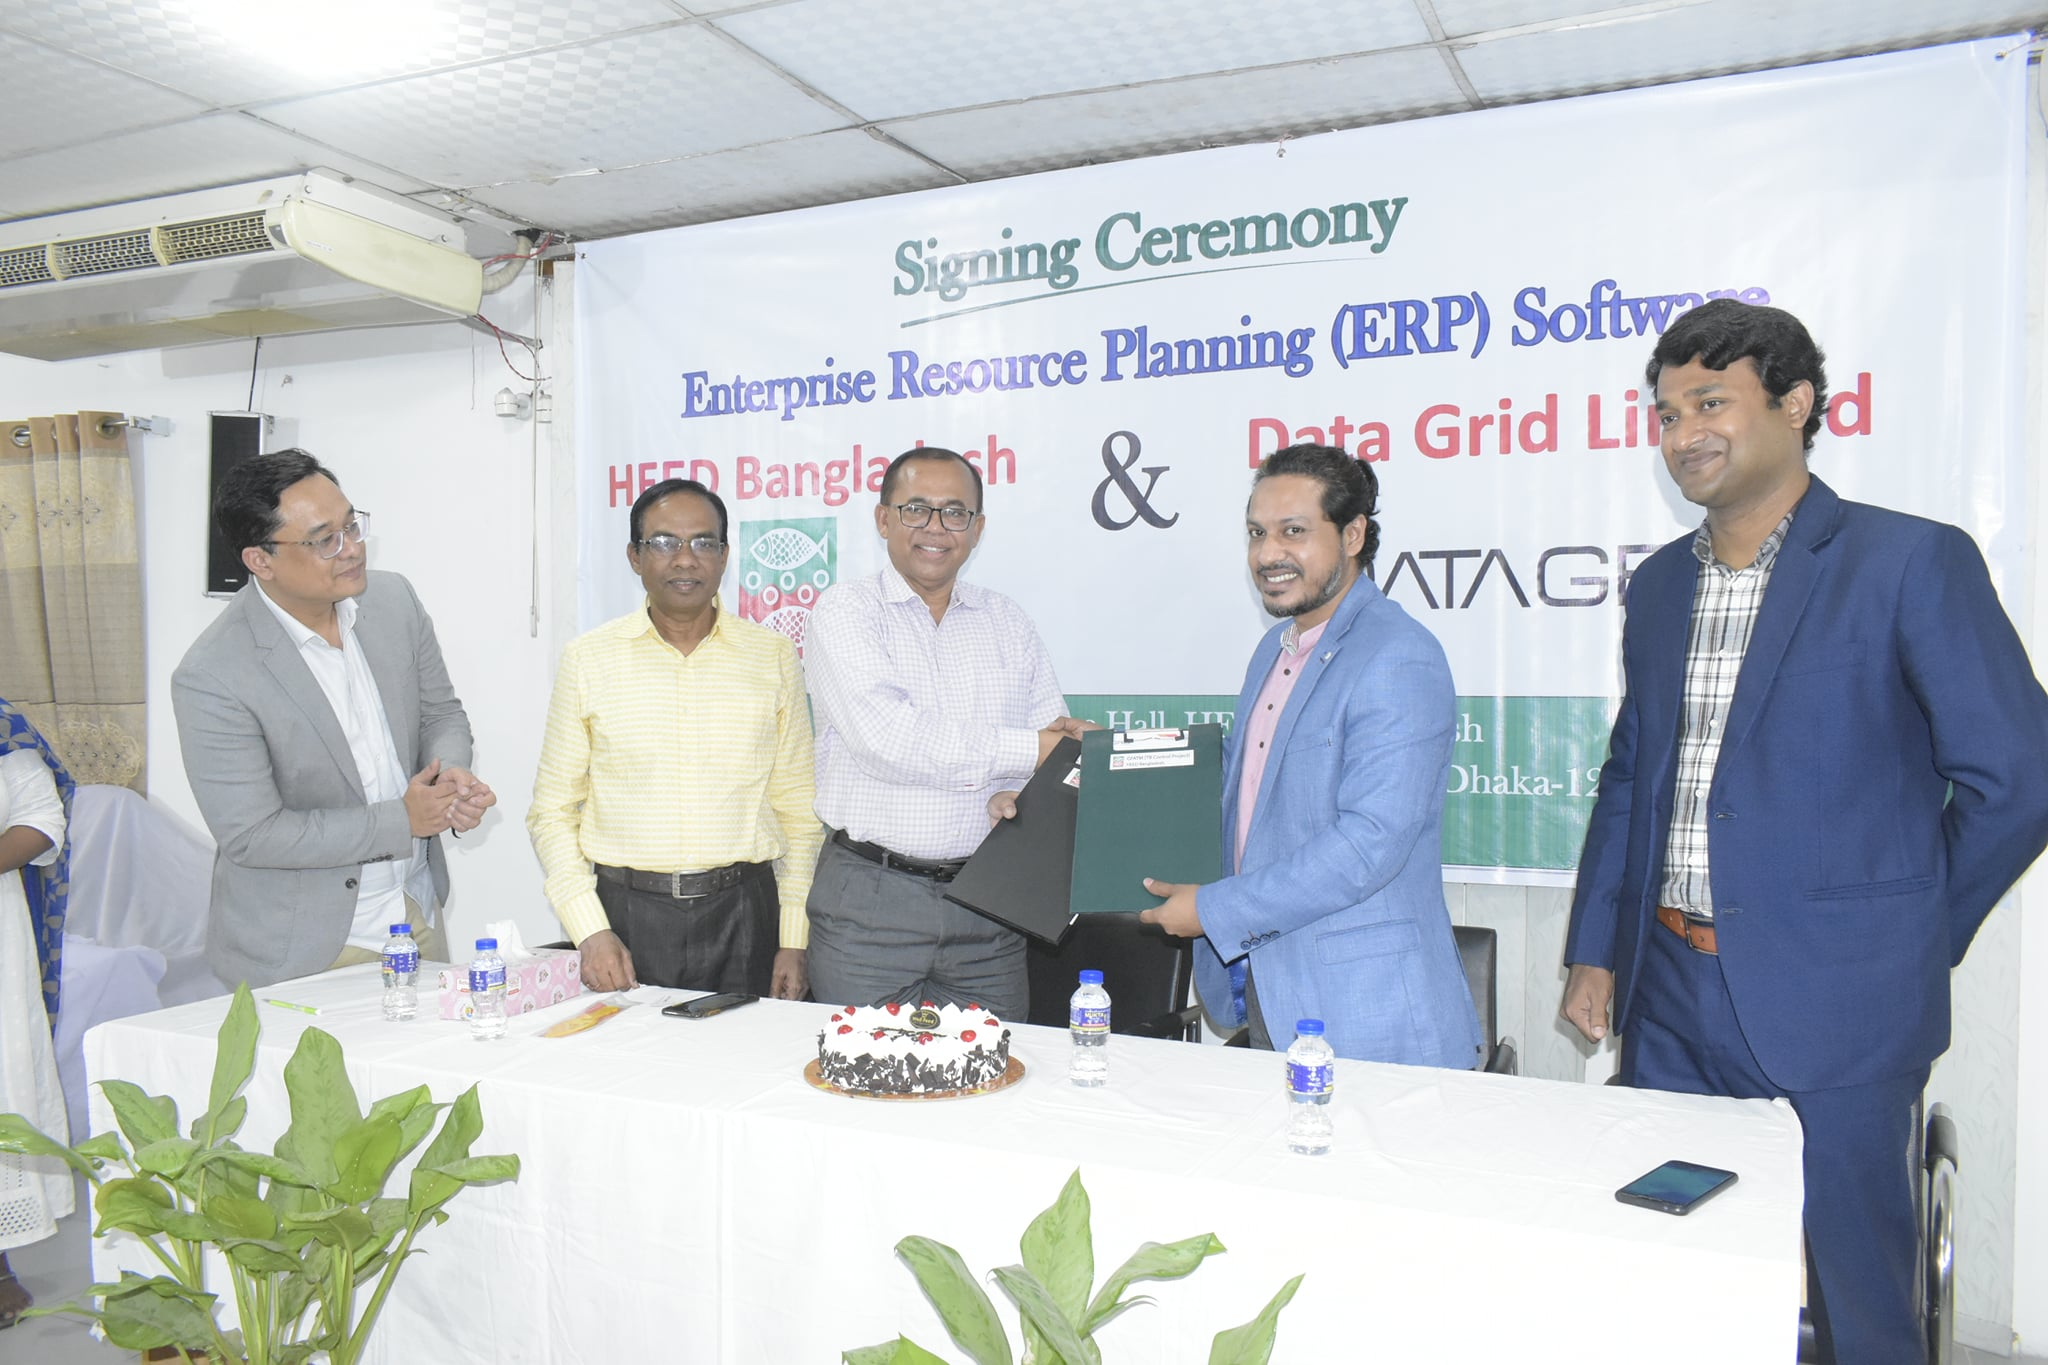 Signing Ceremony of ERP Software between HEED Bangladesh and Data Grid Limited